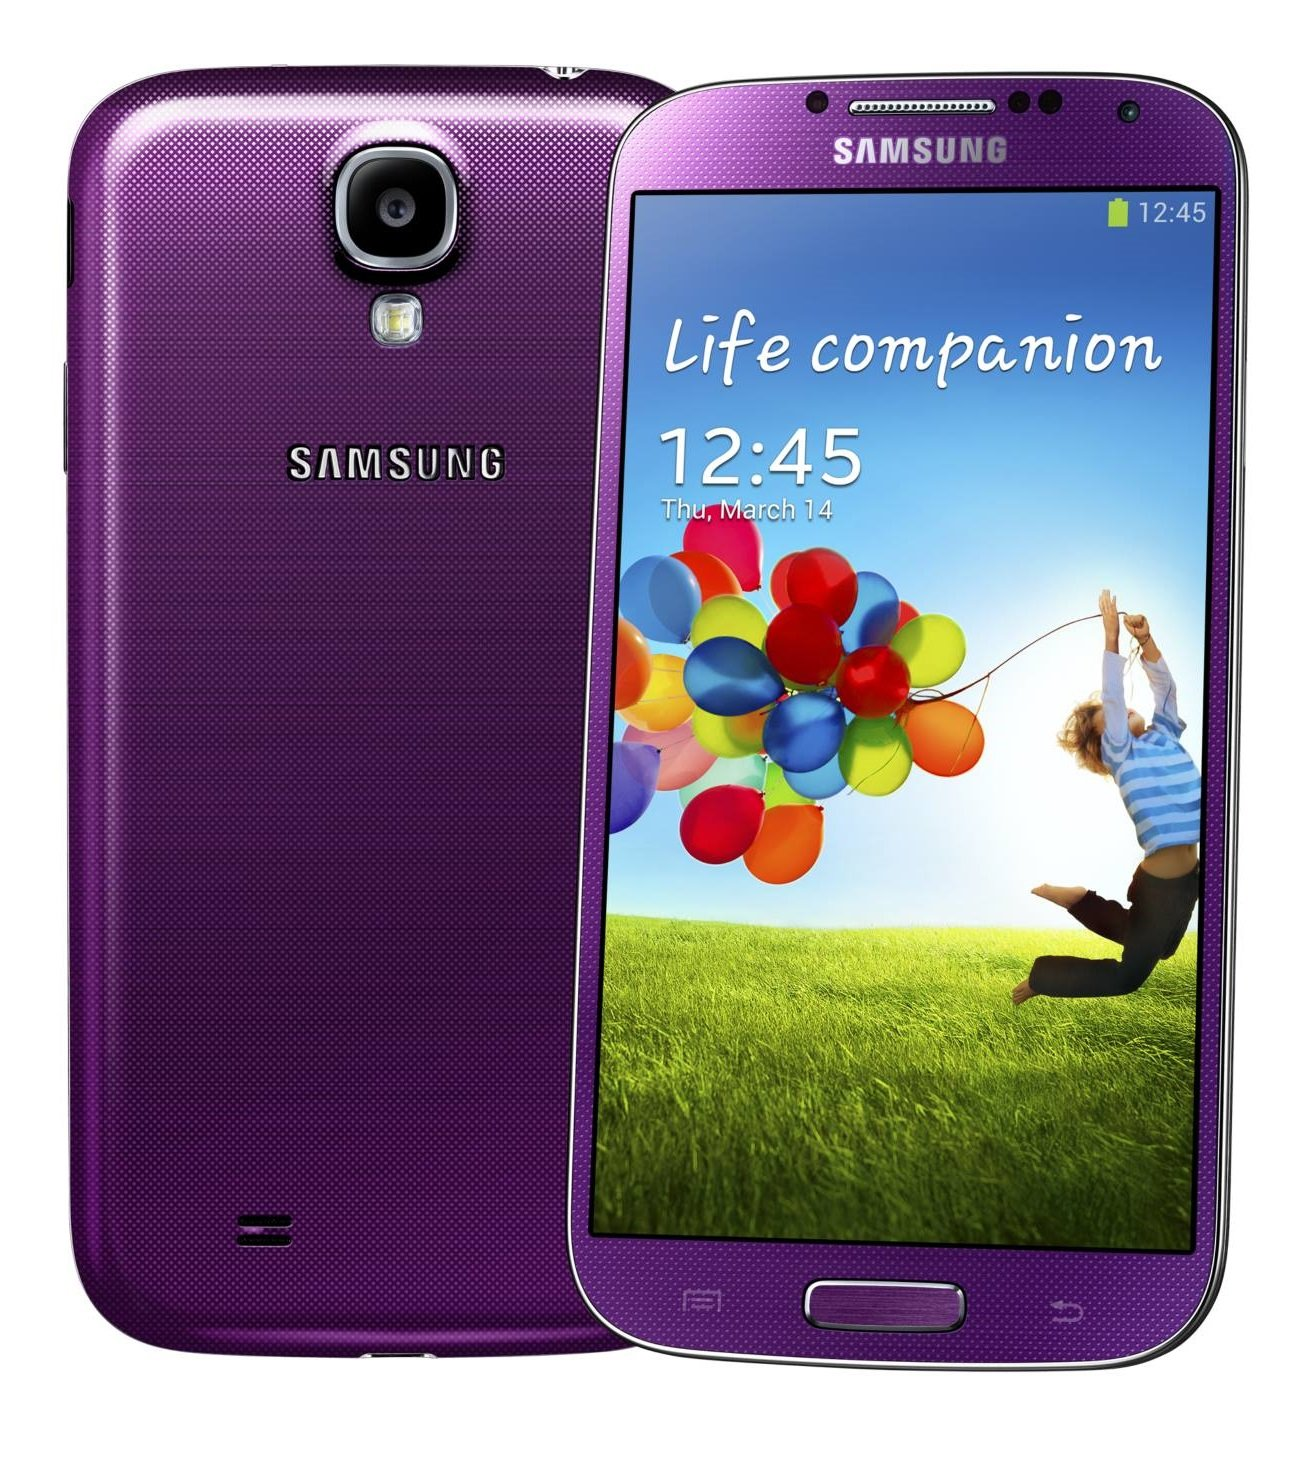 Amazon.com: Samsung Galaxy S III, Color Morado 16 GB (Sprint)